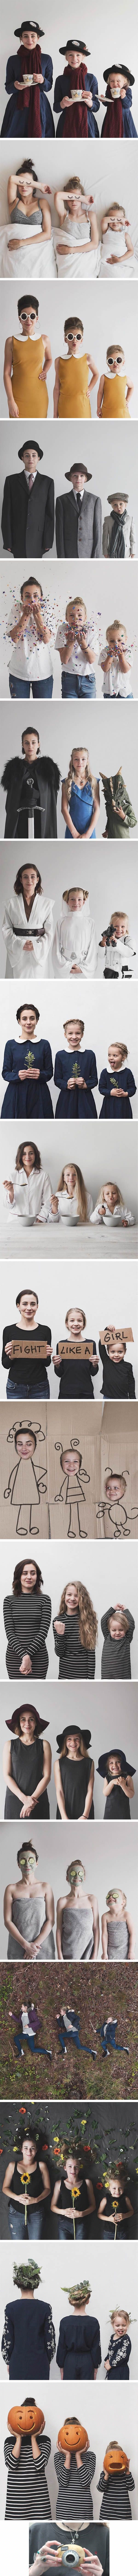 Mother Takes Adorable Photos With Her Two Daughters In Matching Clothing | Meme on Daily LOL Pics